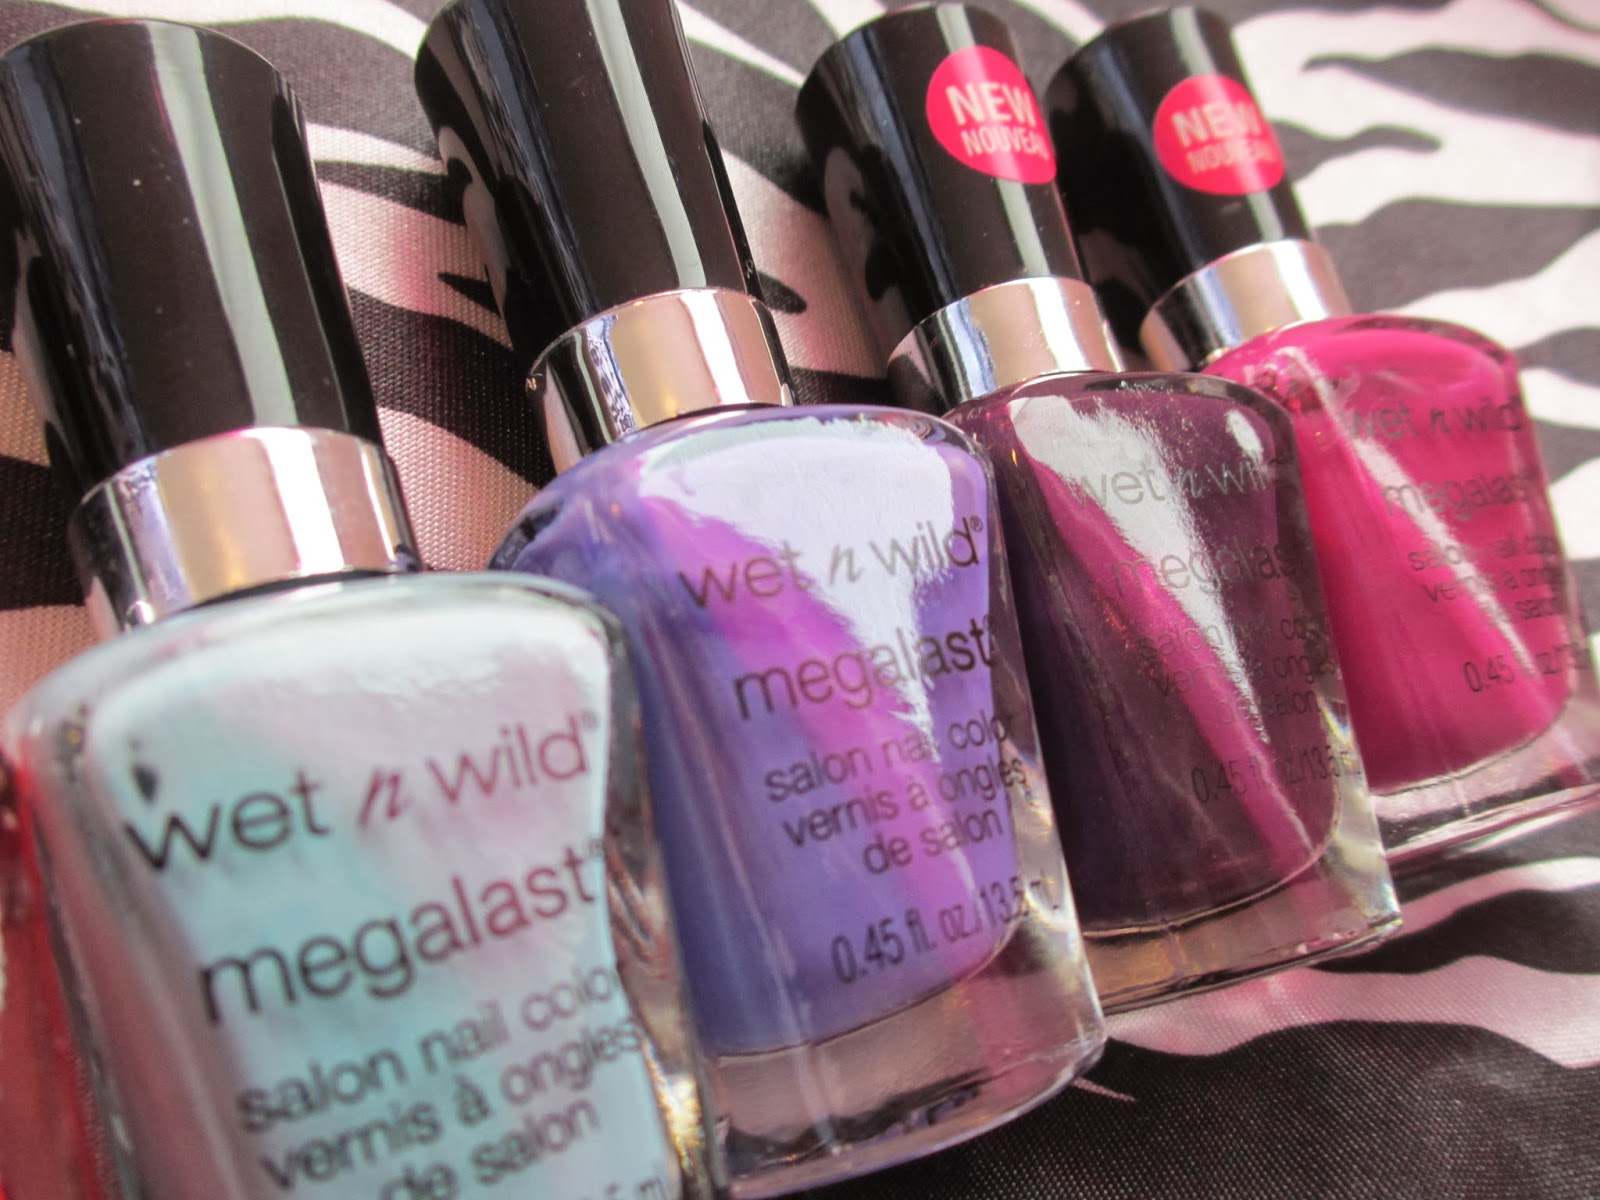 Hot Glue Sparkle Wet N Wild Megalast Nail Polishes Review Photos Salon Color Candylicious Retailers Okay If Youre Anything Like Us Then You Are Probably Squealing With Joy Just Looking At These Pretty Pictures